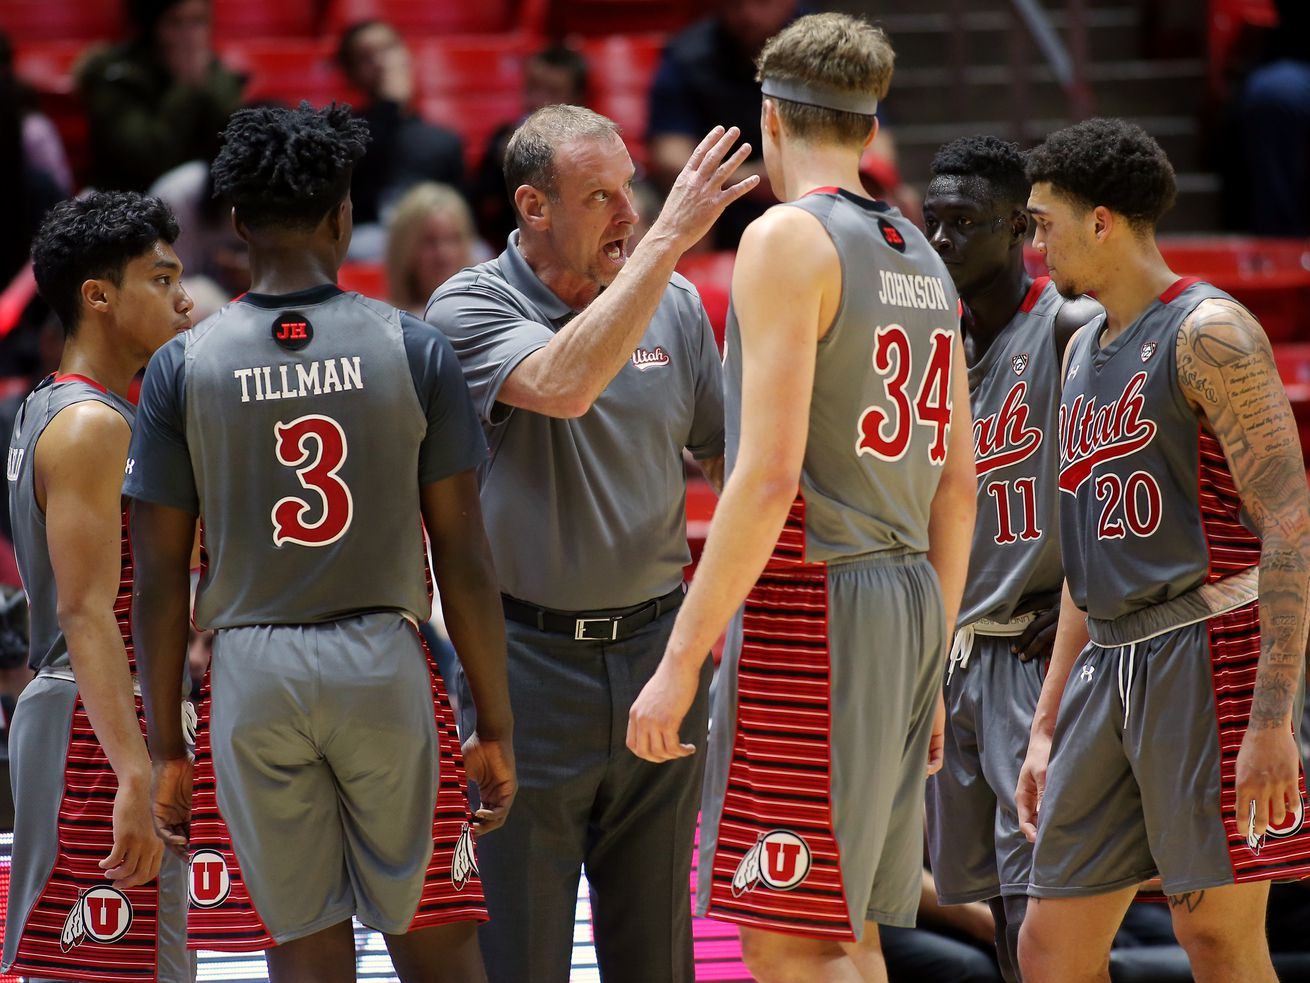 Utah basketball coach Larry Krystkowiak talks with his players during a timeout as Utah and Colorado play in the Huntsman Center in Salt Lake City on Sunday, Jan. 20, 2019.